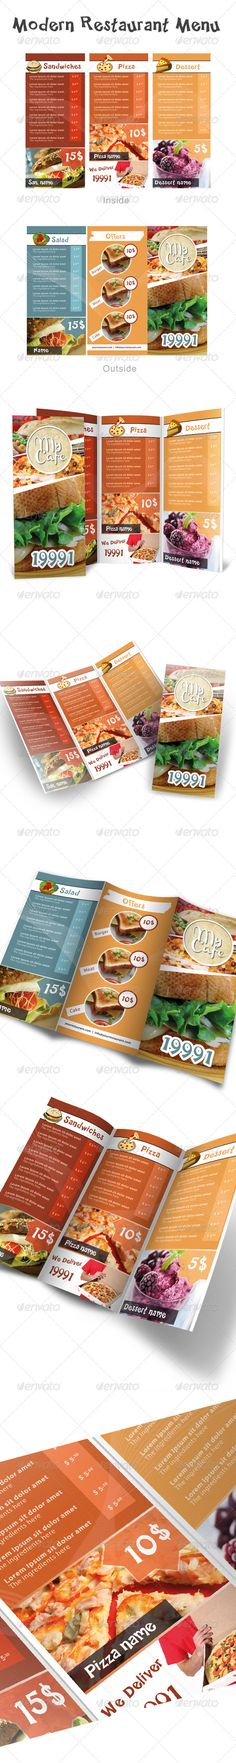 Modern Restaurant Menu  #GraphicRiver         MODERN RESTAURANT MENU    This high quality professional brochure Used for restaurants and food related businesses.   WHAT DO YOU GET ?   - Restaurant brochure (DIN Long Size, trifold)   - Help File   - Preview   It is very easy to add your own images.   READY FOR PRINTING !   All the files are print ready. 300 DPI , CMYK with margins.   FONTS :  Myrid Pro  .fontshop /search/?q=myriad Happy Sans  .dafont / happy-sans.font  Please note…